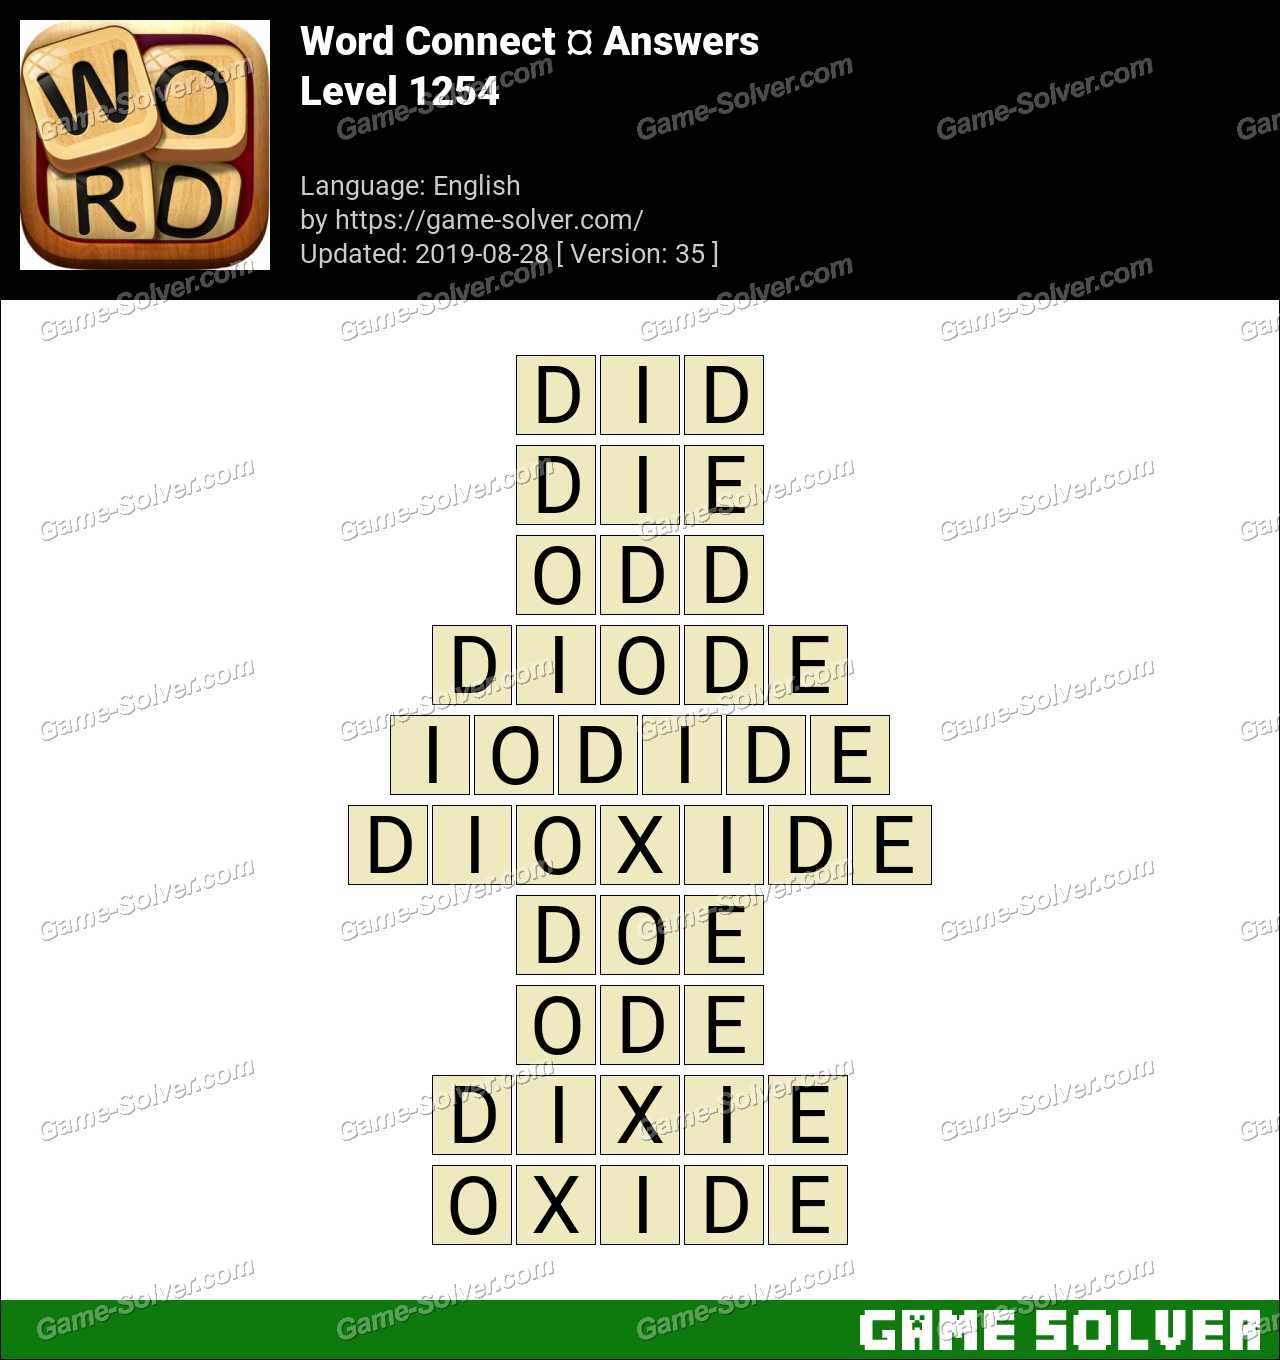 Word Connect Level 1254 Answers